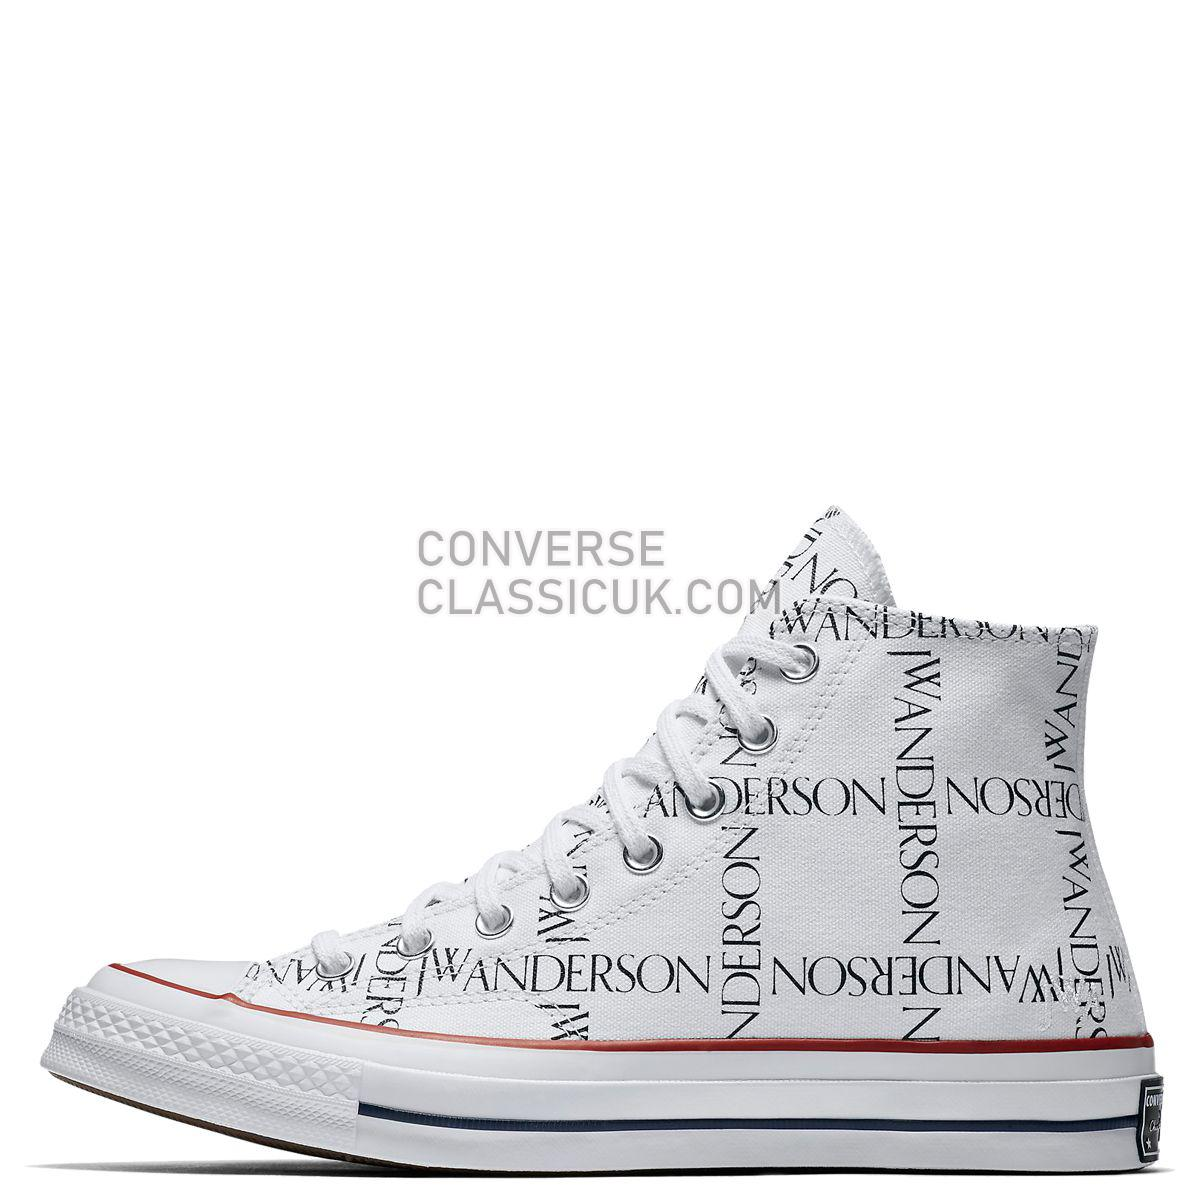 Converse X JW Anderson Chuck Taylor All Star 70 Grid High Top White Mens 160808 White/Black/Insignia Red Shoes